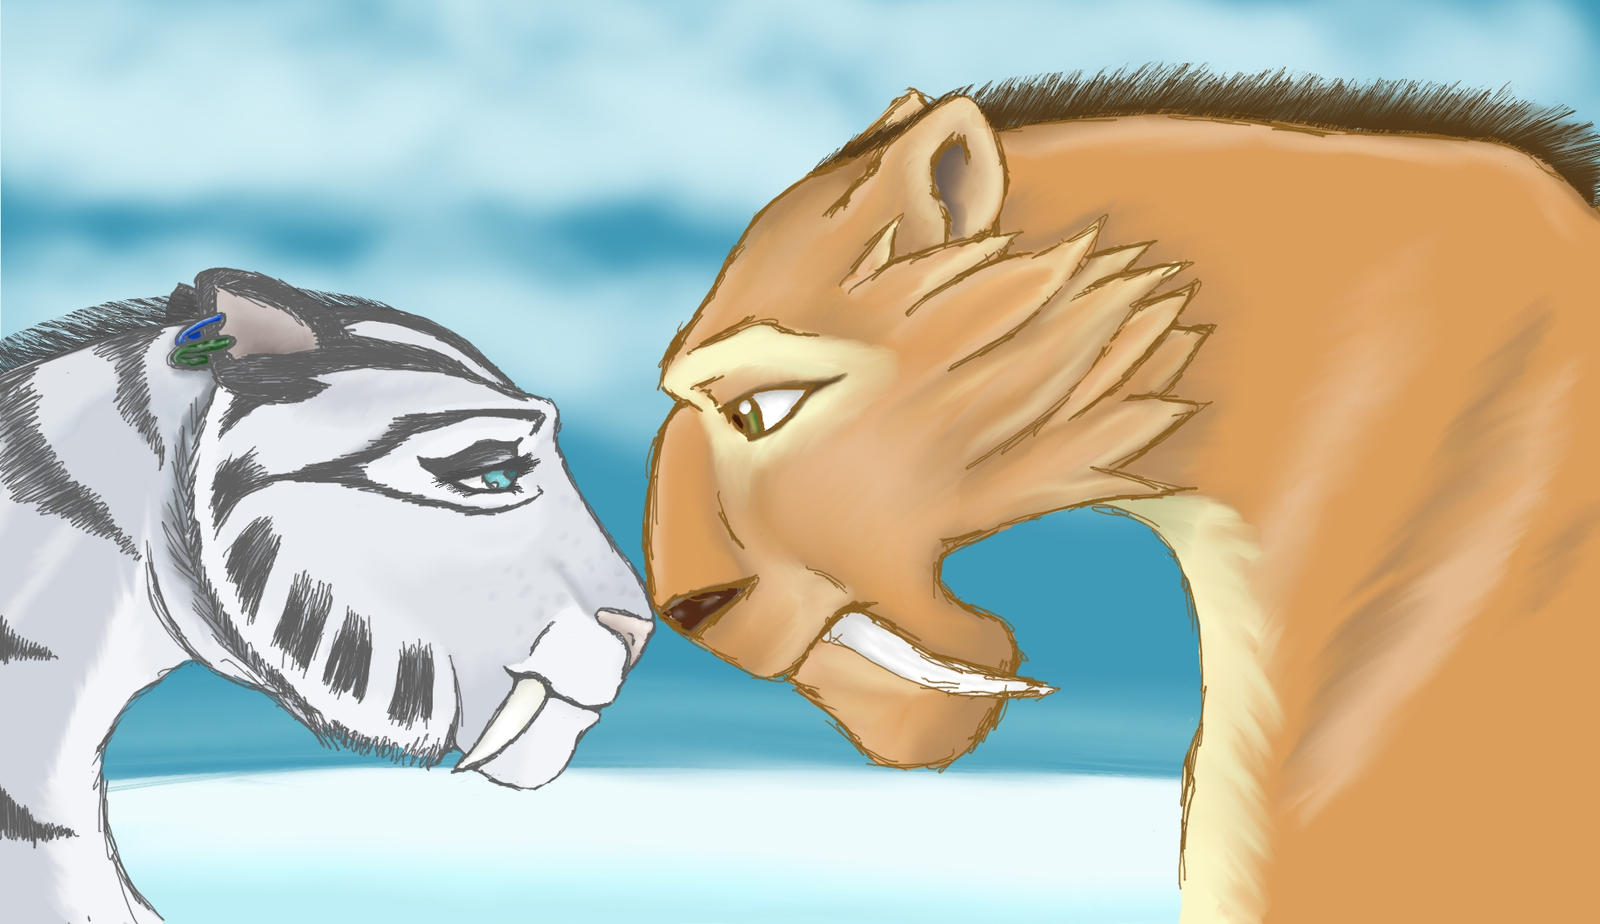 ice age 4 shira and diego kiss - photo #4